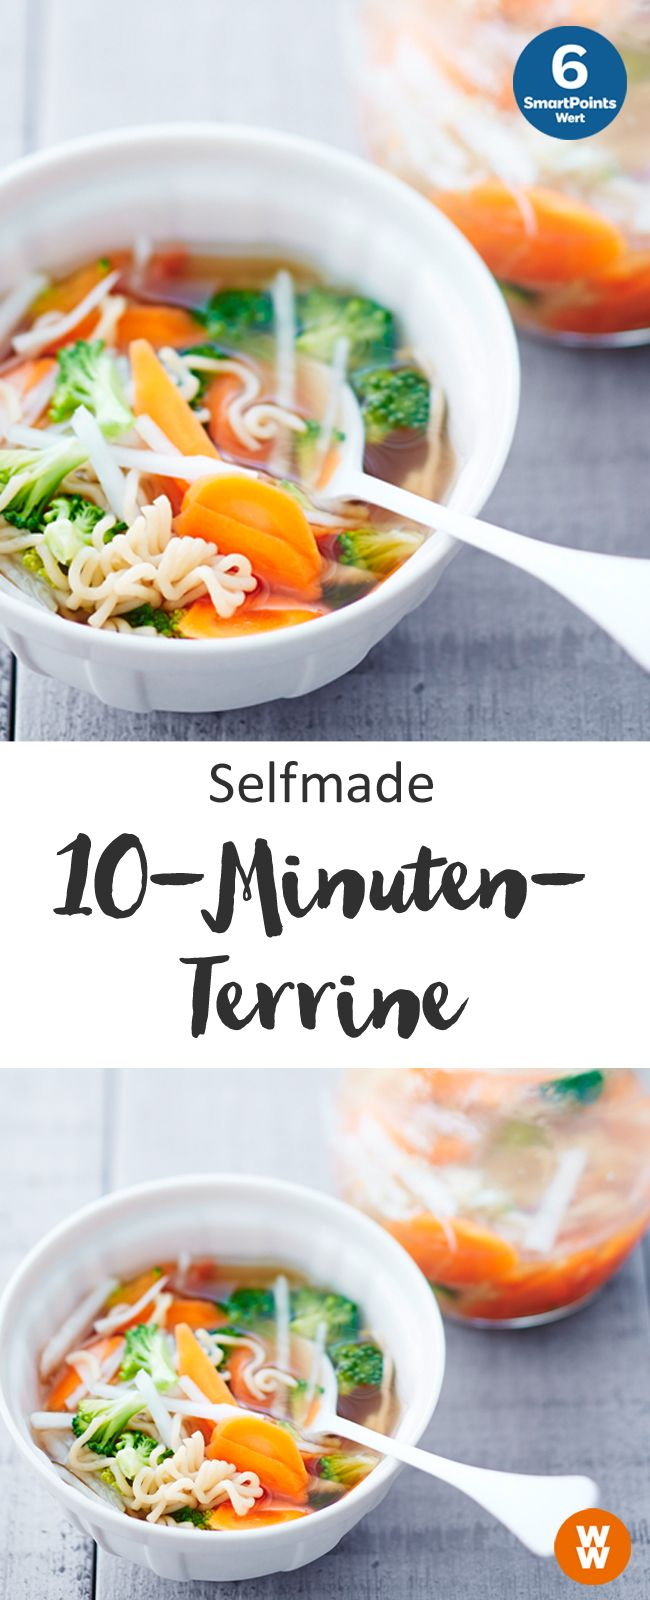 Selfmade-10-Minuten-Terrine, 6 SmartPoints/Portion, Suppe, Weight Watchers, fertig in 15 min.